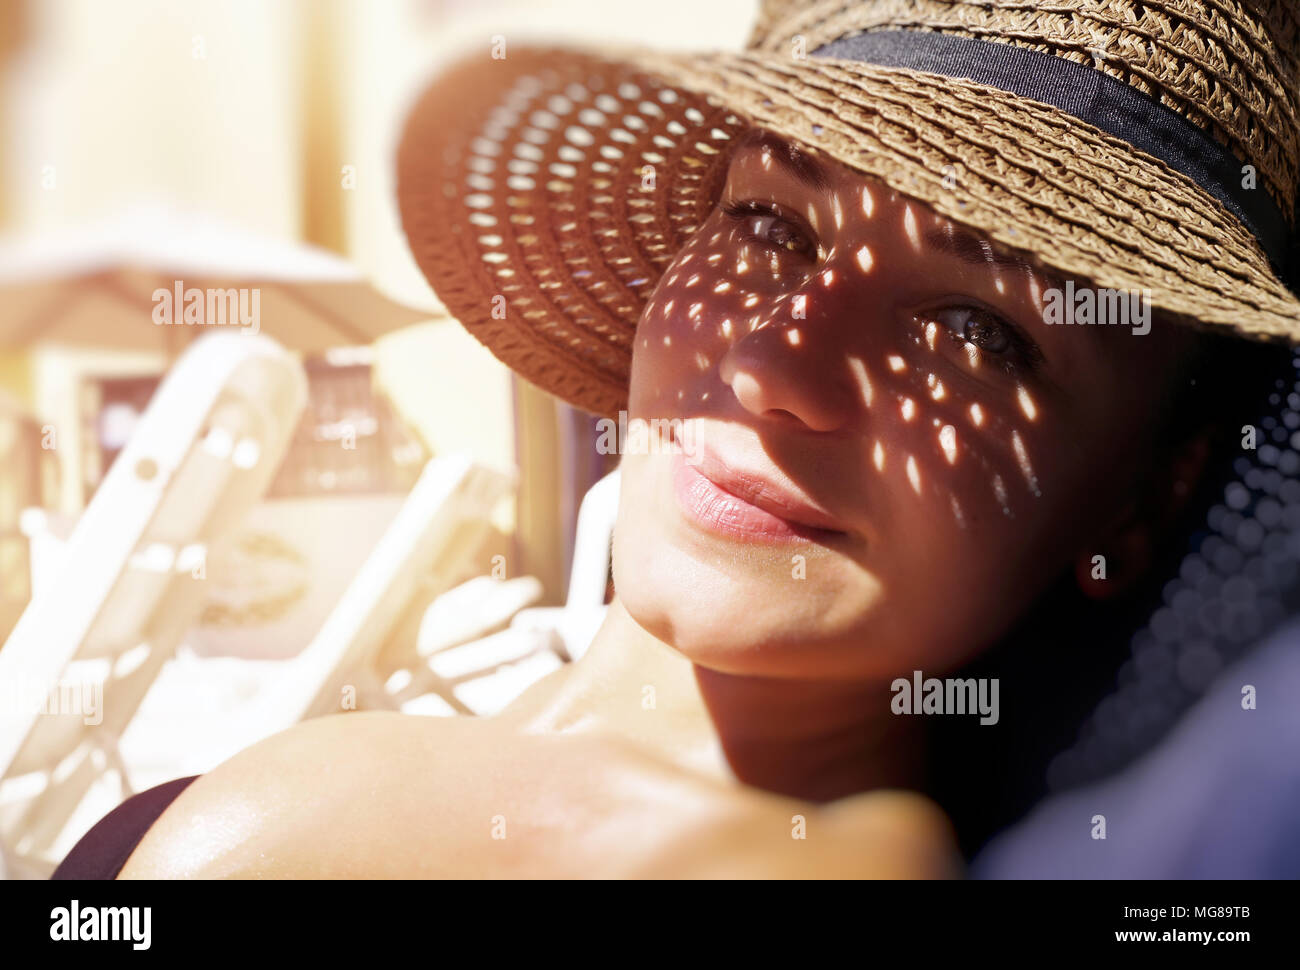 Pretty woman on the beach, closeup portrait of a nice female hides her face from the sun under a straw hat, skin protection, happy healthy summer vaca - Stock Image